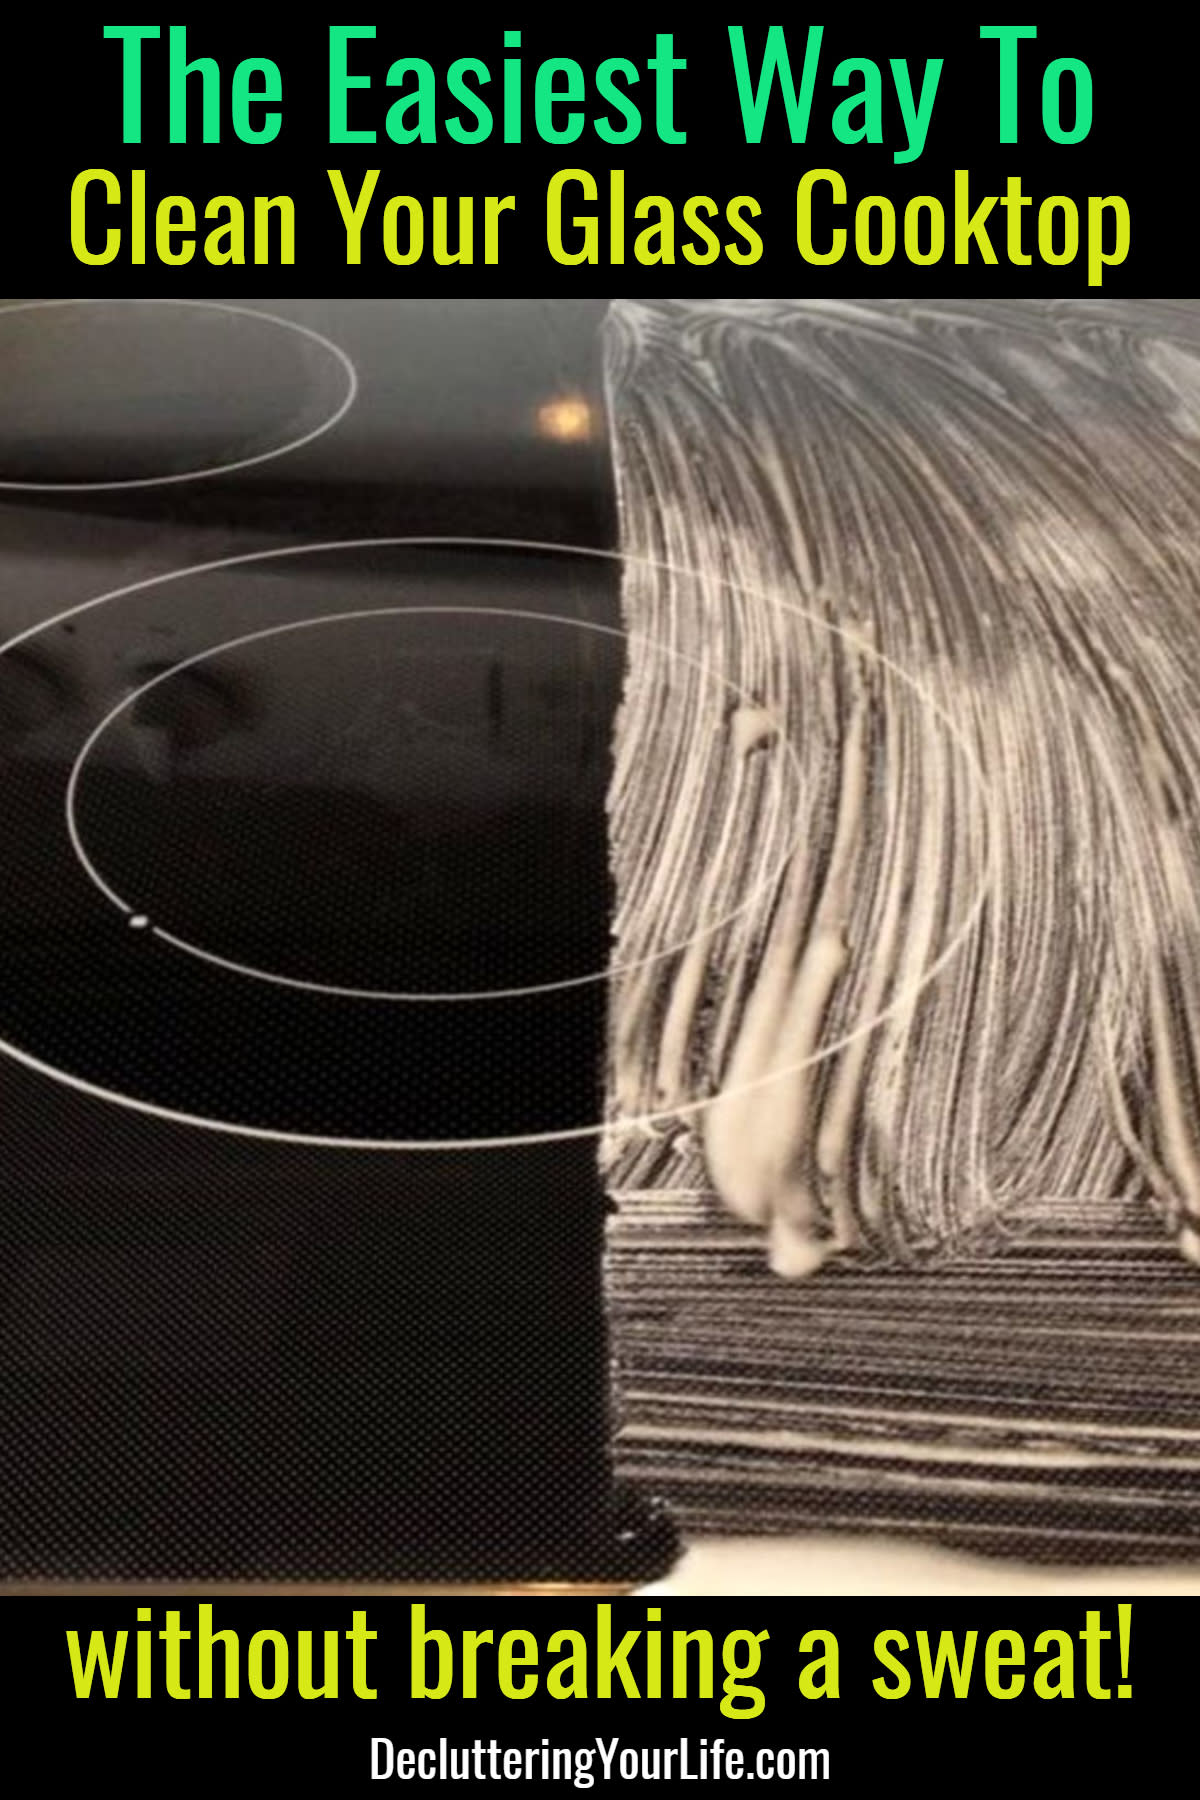 Clean Glasstop Stove the EASY Way - How to clean glass cooktop, black glass stove top tips and tricks - removes burnt on messes too!